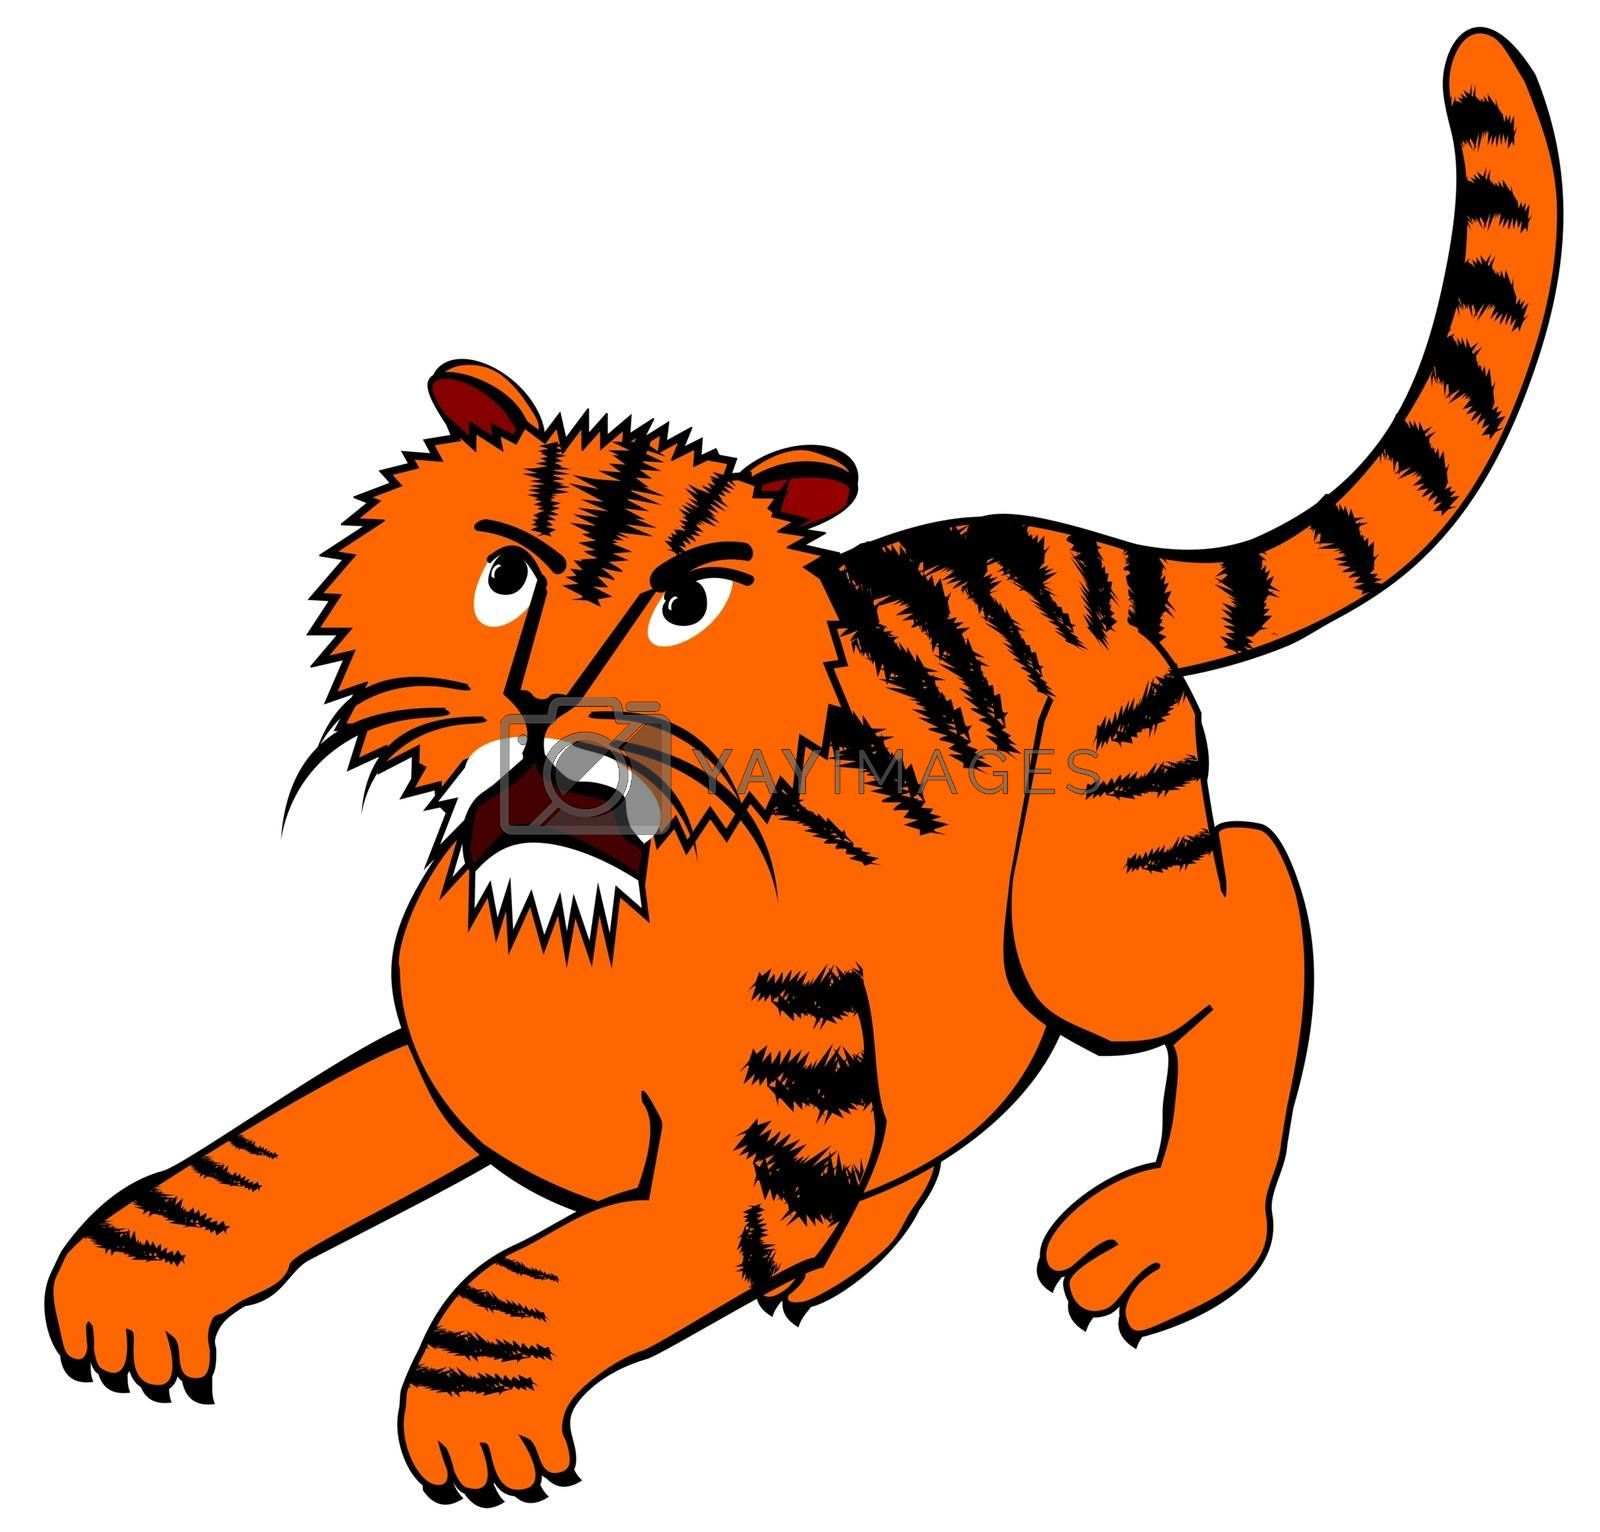 illustration of an angry tiger ready for jumping